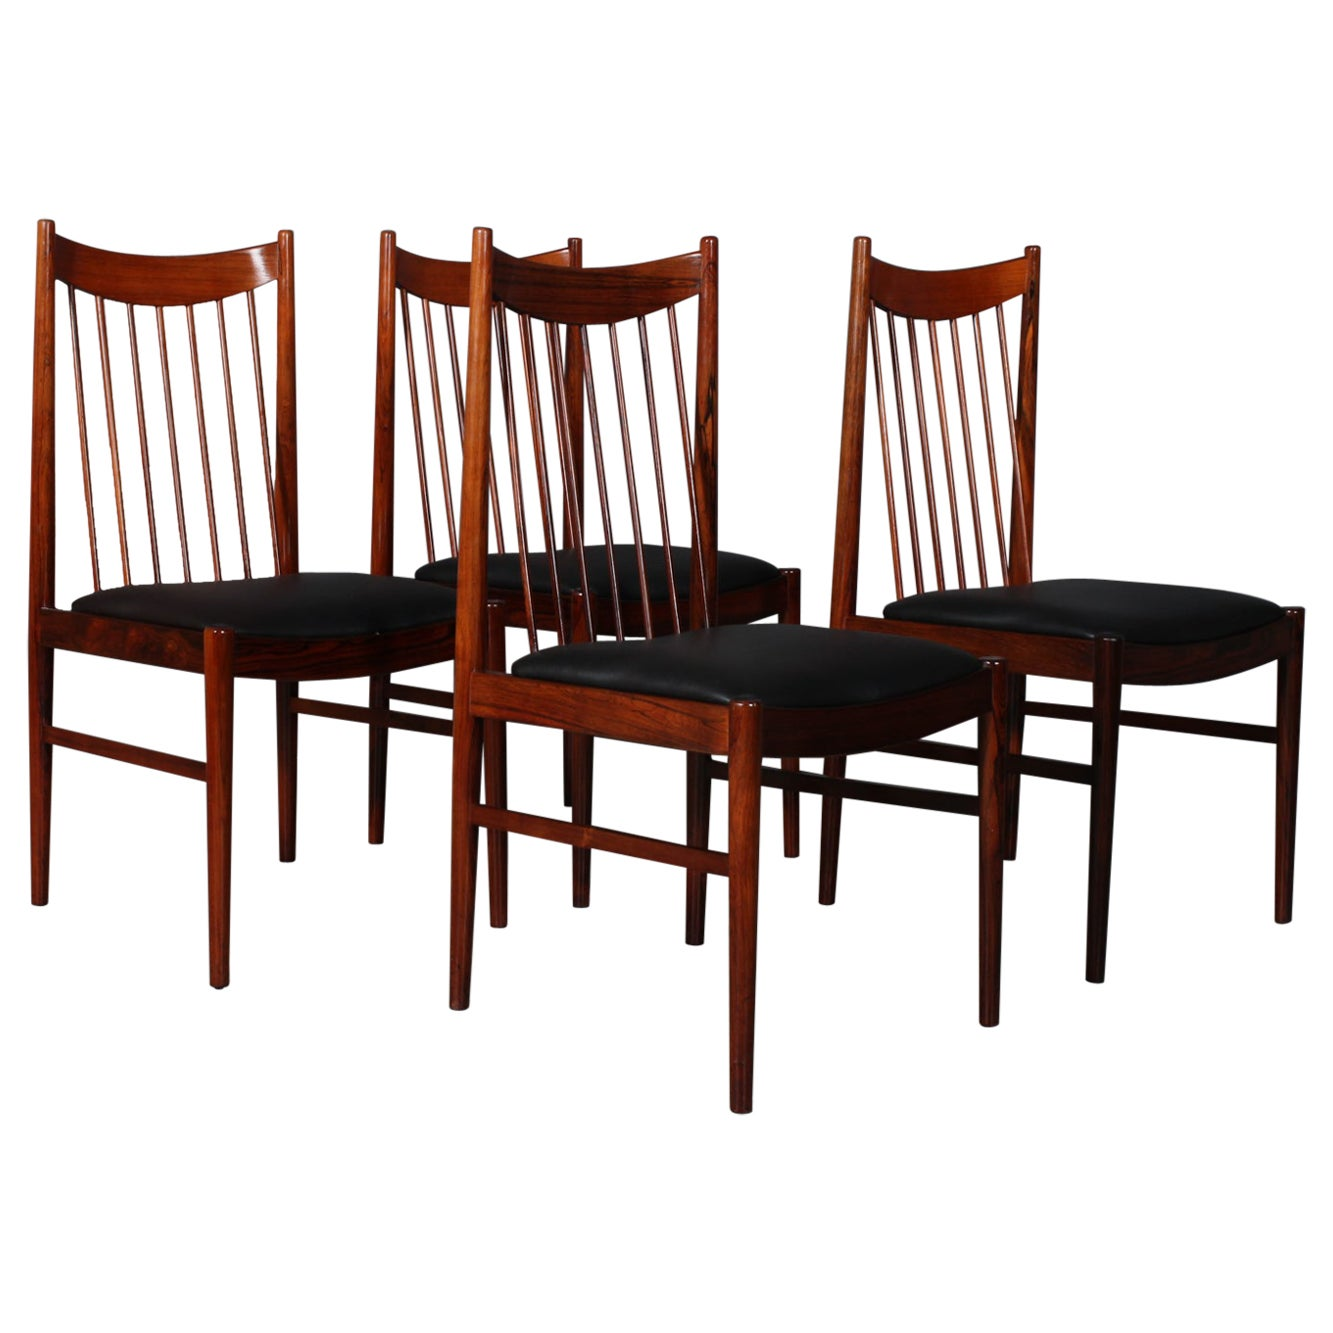 Set of Arne Vodder Rosewood Chairs, Model 422, Made by Sibast